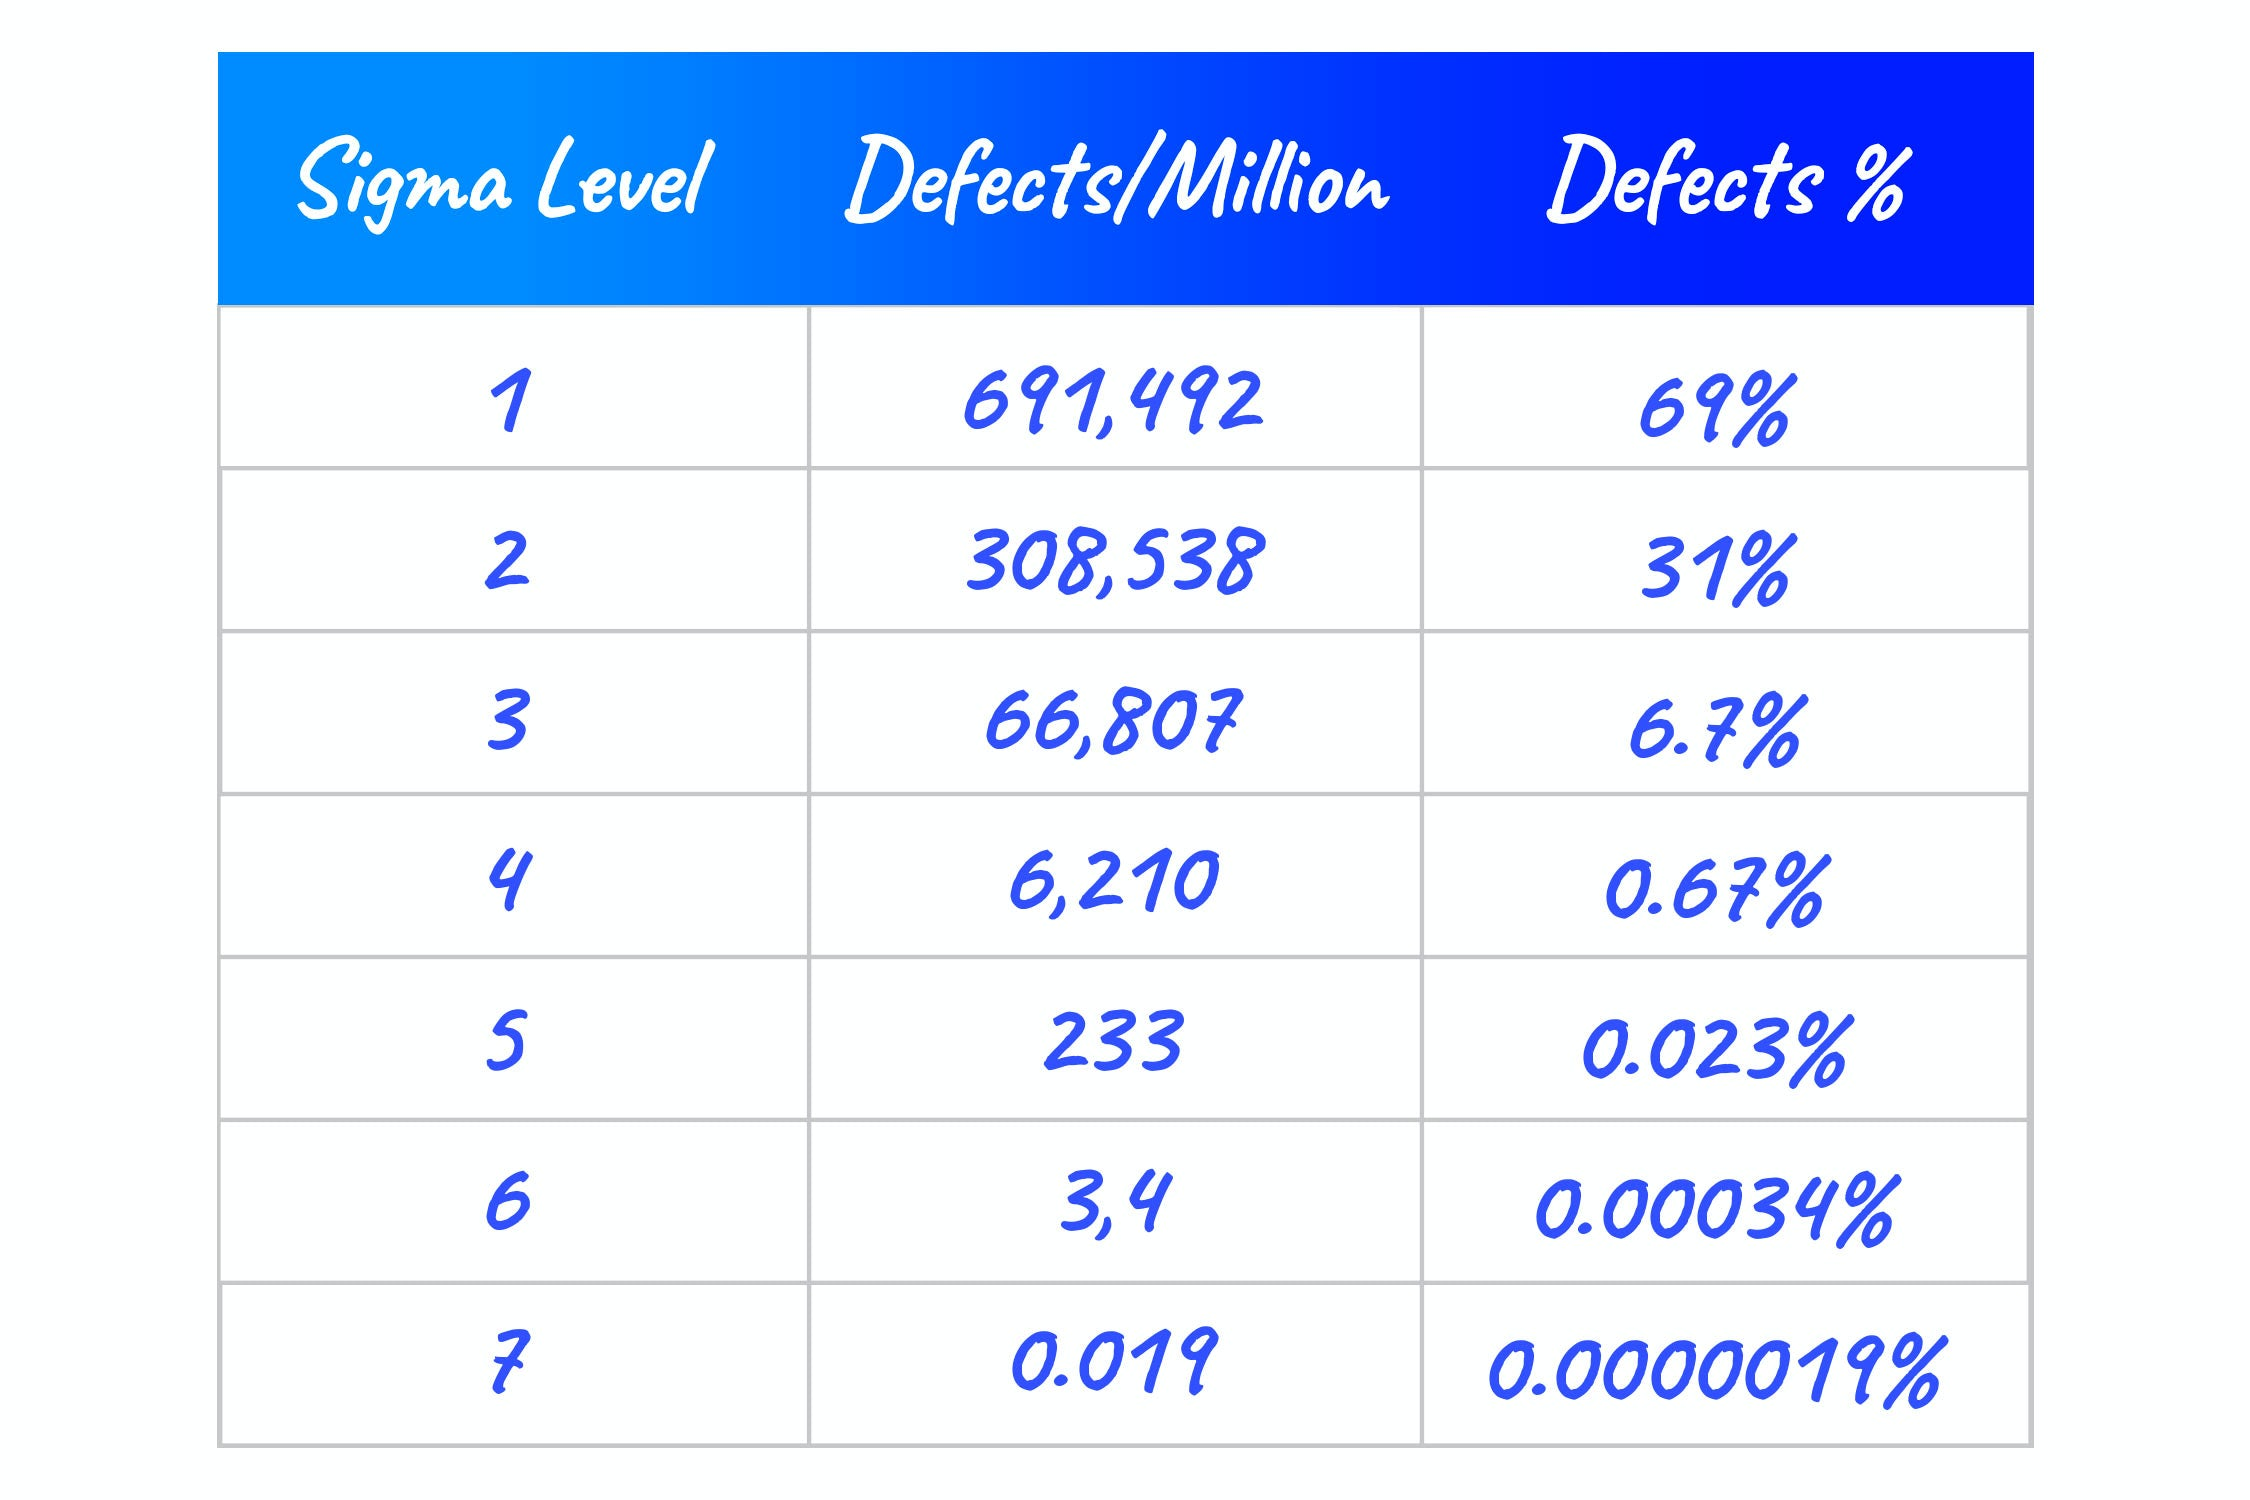 table of data regarding six sigma deficiency levels